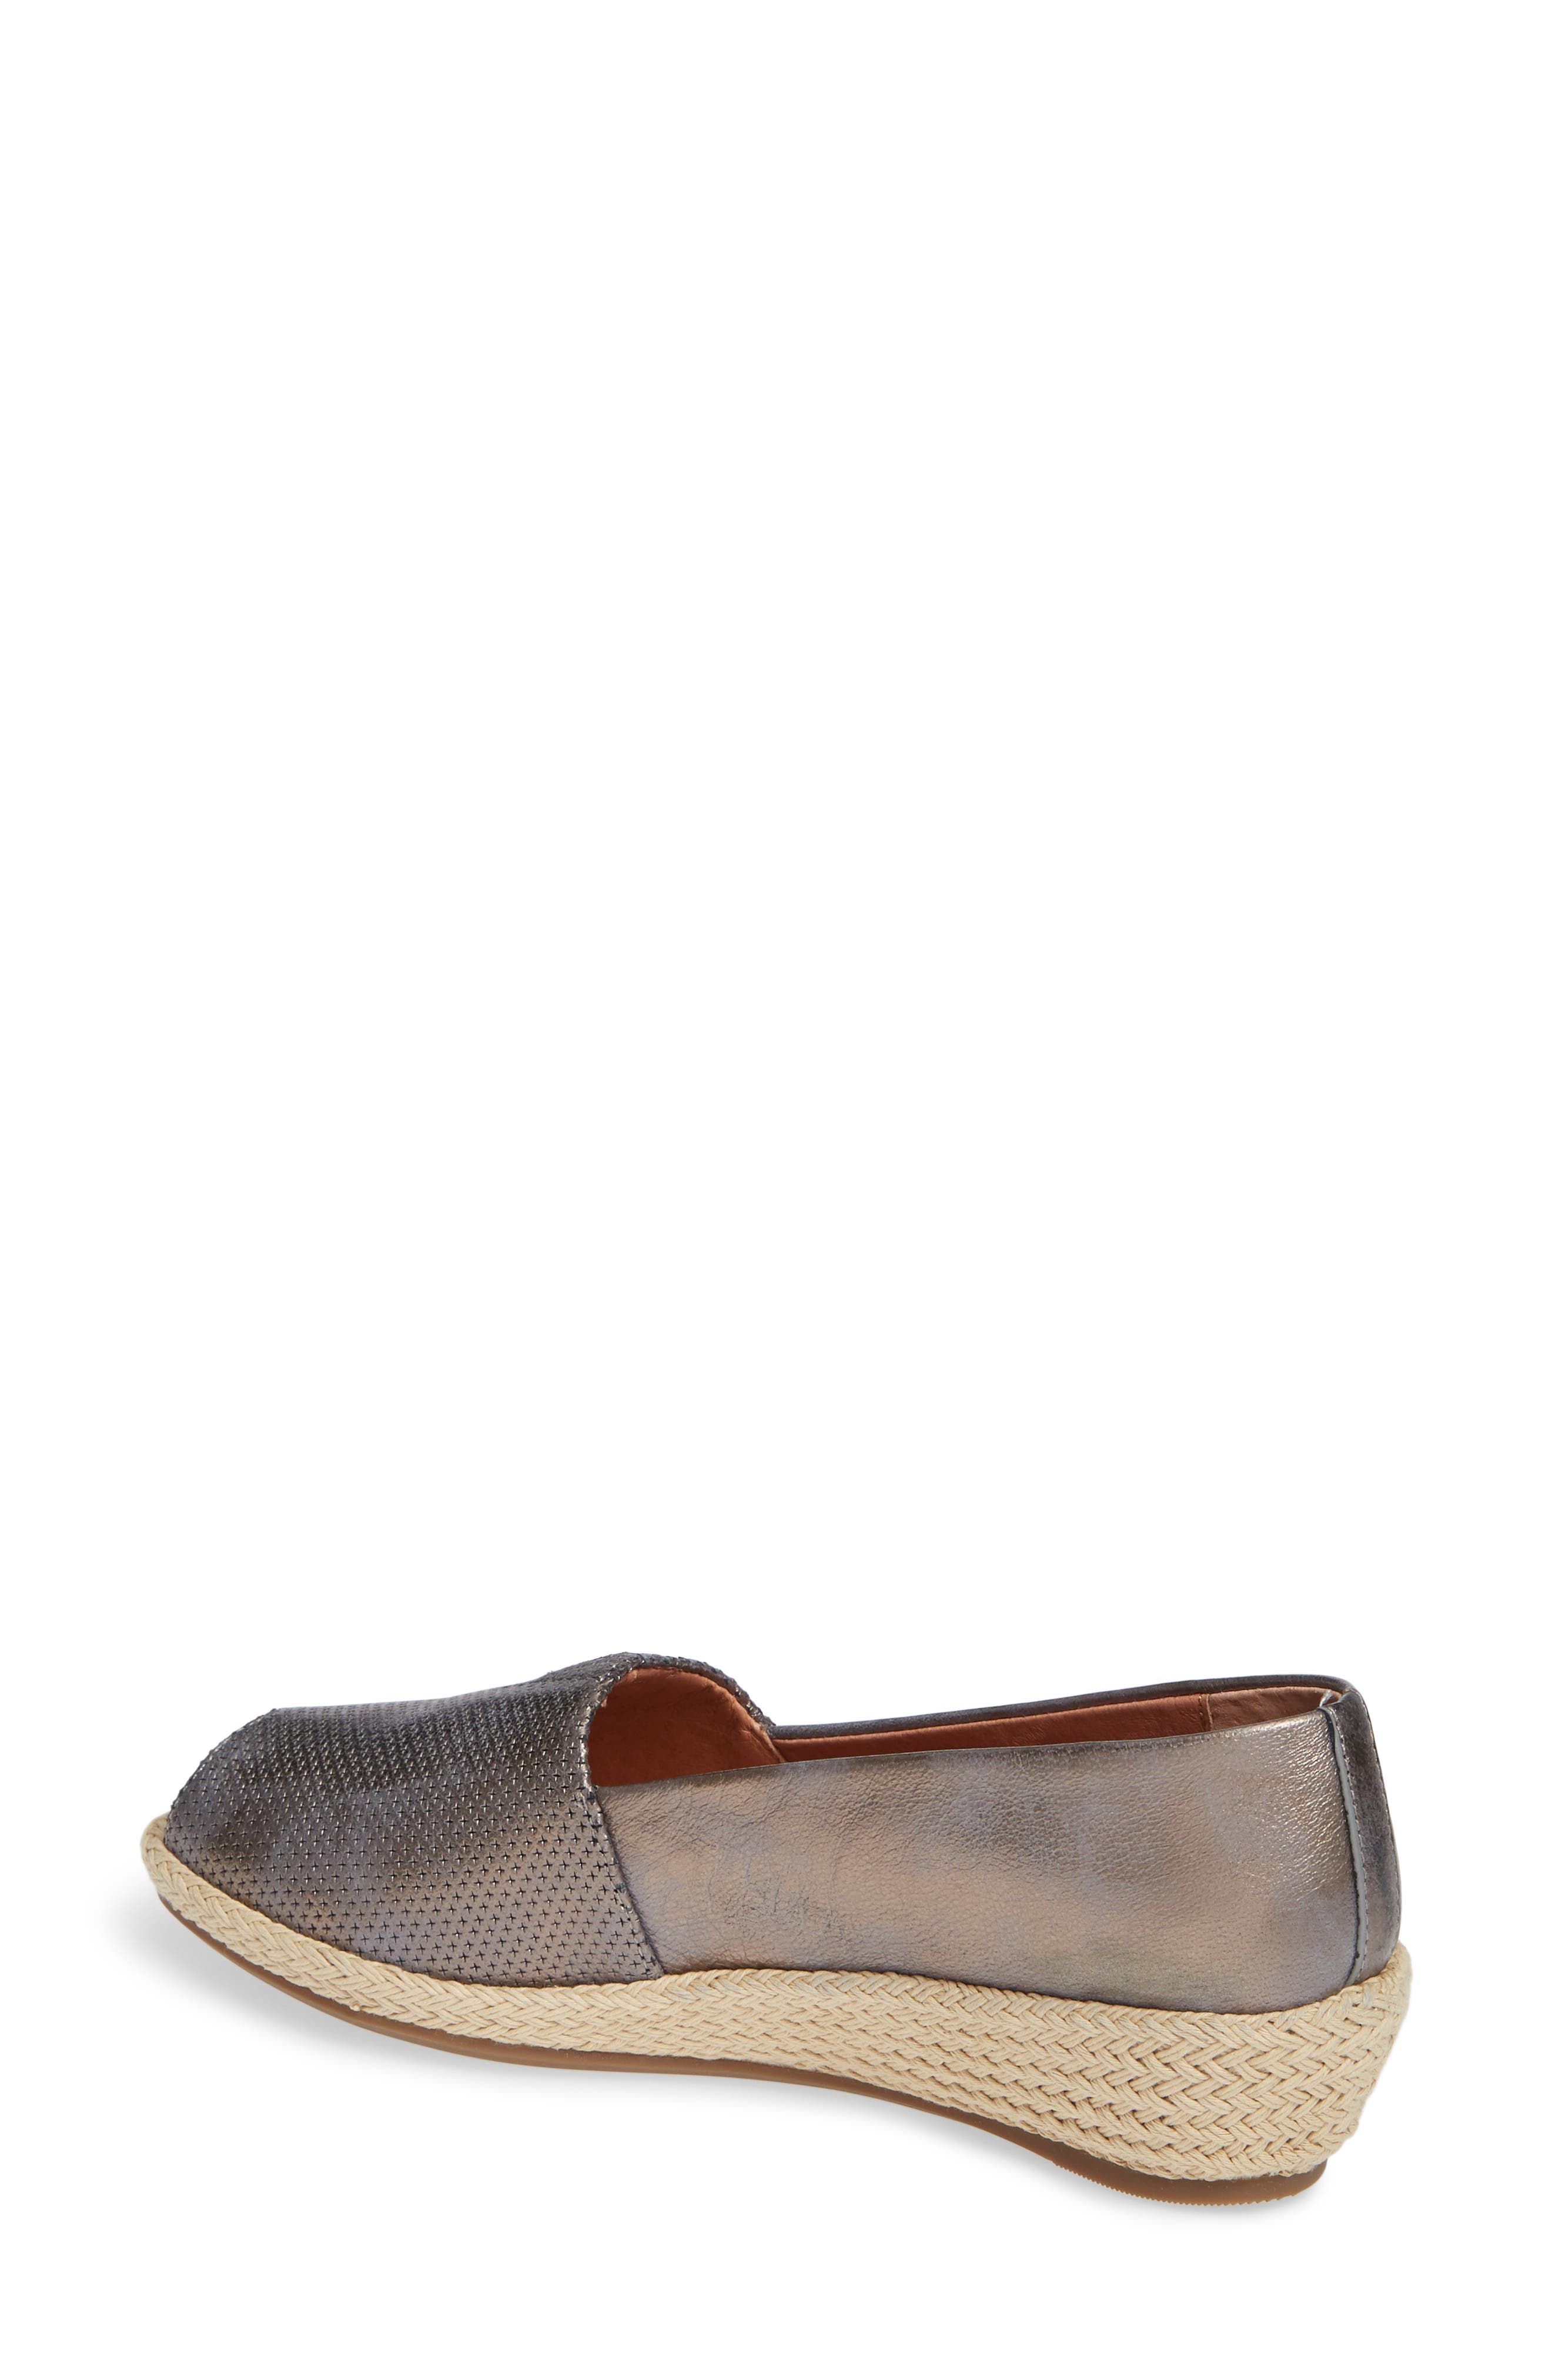 GENTLE SOULS BY KENNETH COLE, Luca Open Toe Wedge Espadrille, Alternate thumbnail 2, color, PEWTER METALLIC LEATHER